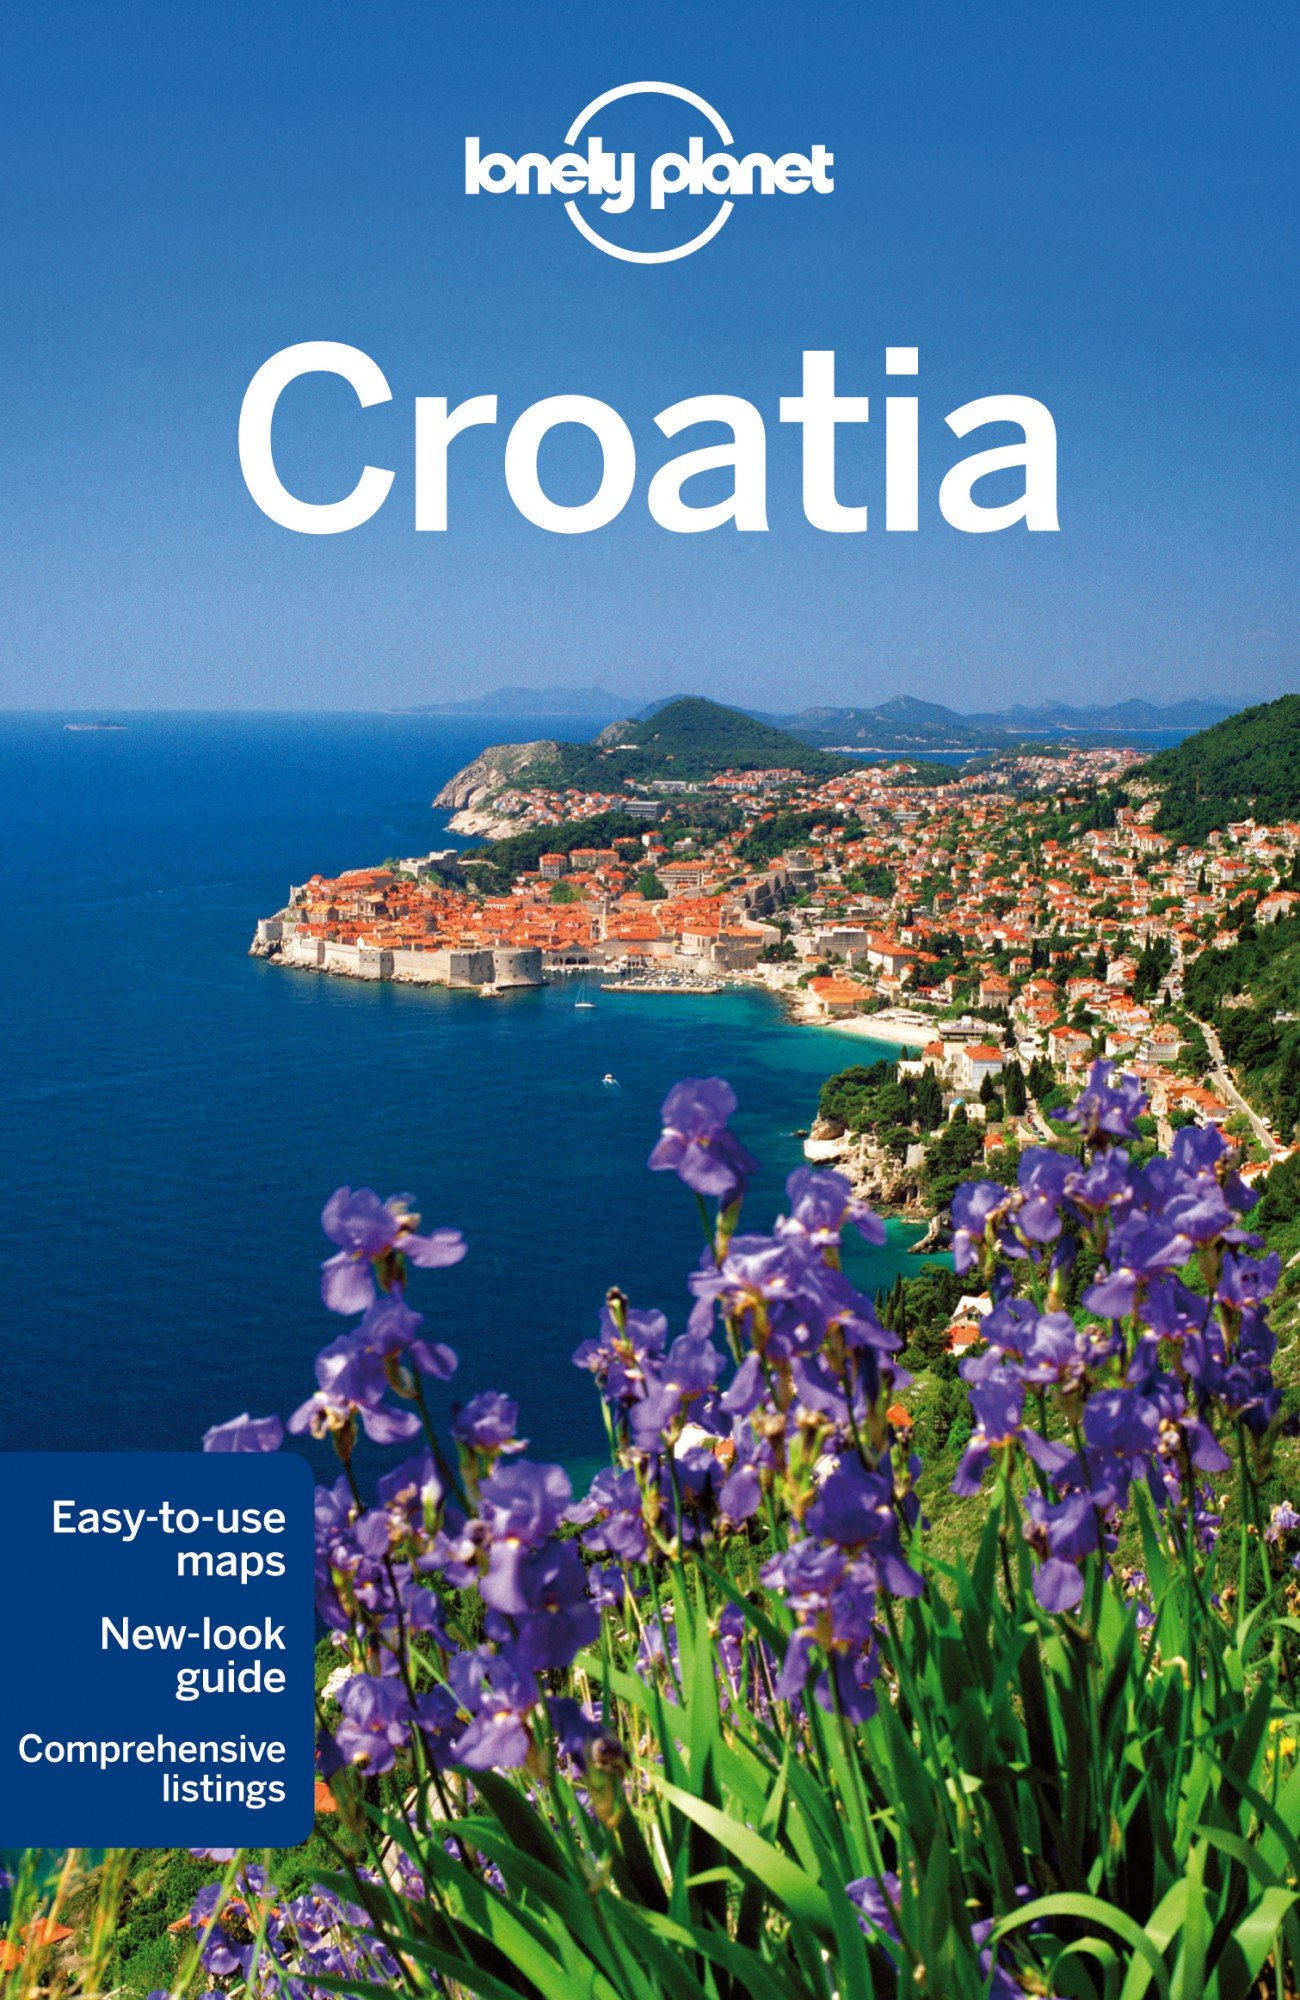 Lonely Planet Croatia (travel Guide): Lonely Planet, Anja Mutic, Vesna  Maric: 9781742203027: Amazon: Books